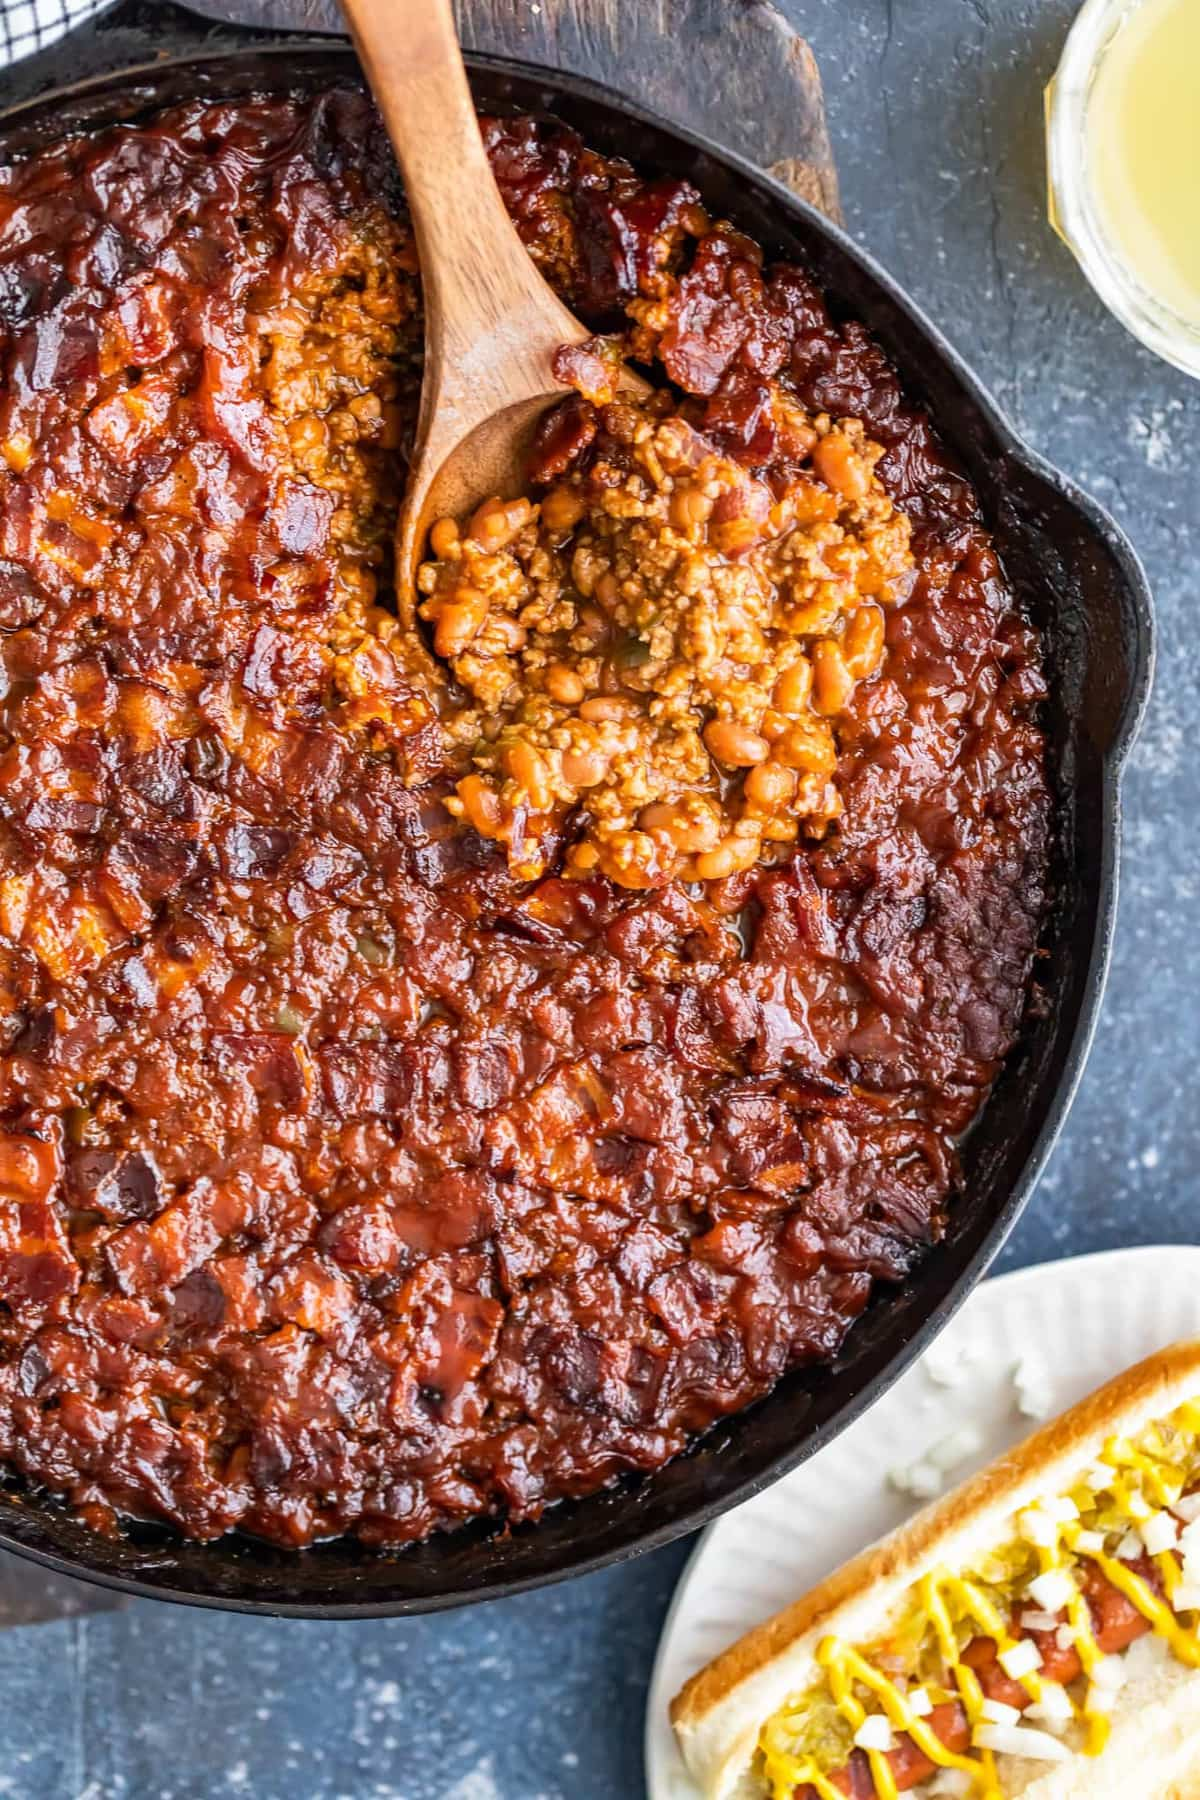 skillet filled with beans, beef, and bacon